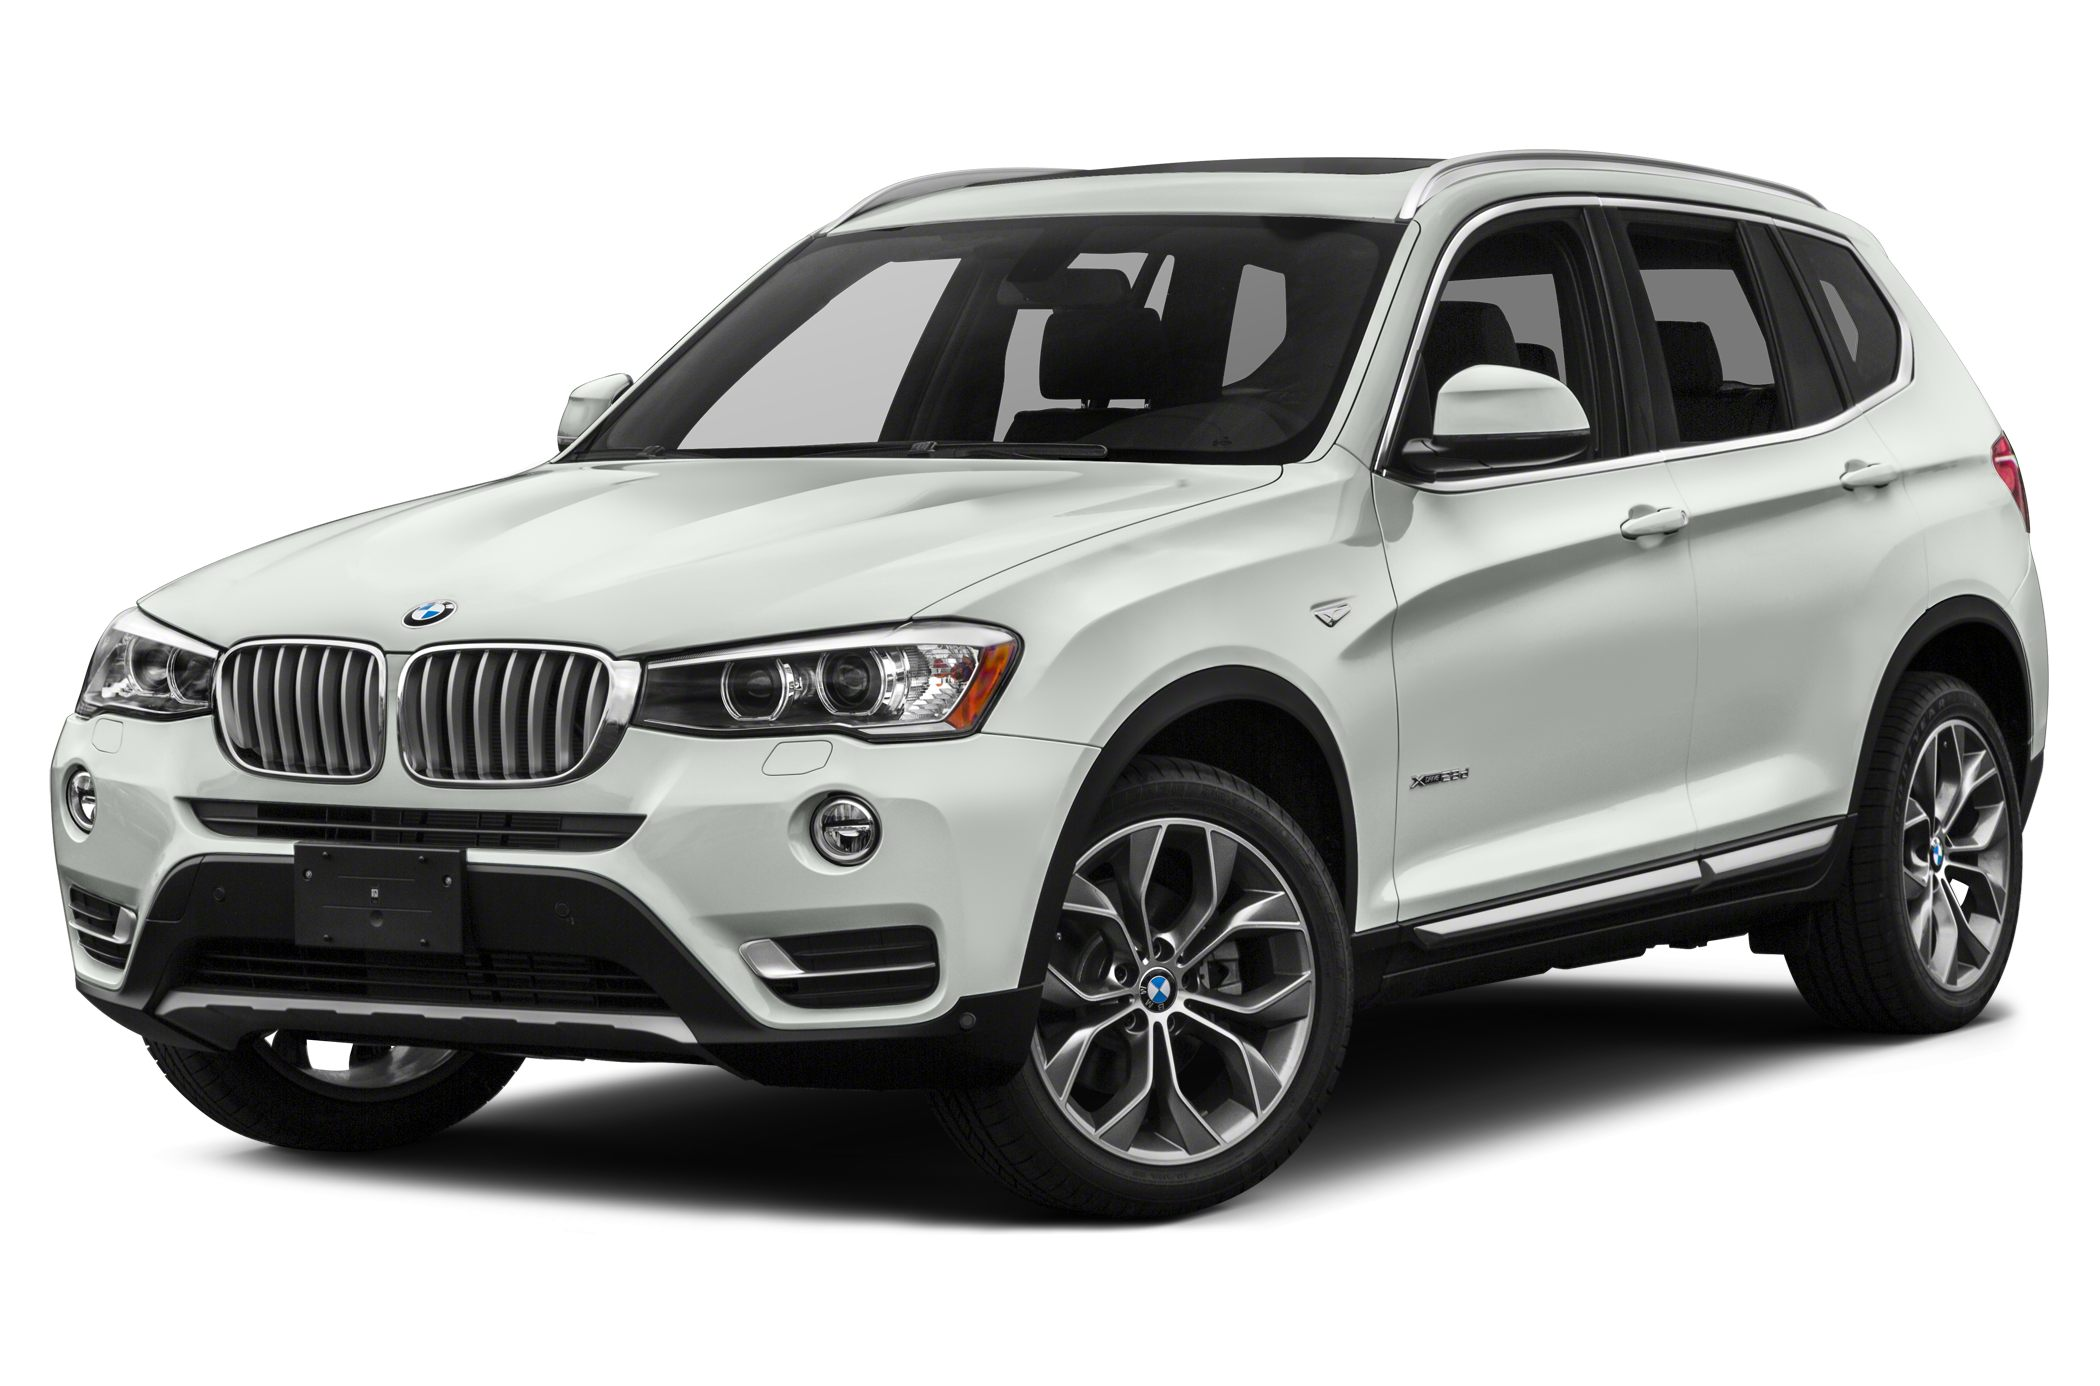 2016 Bmw X3 Xdrive28i 4dr All Wheel Drive Sports Activity Vehicle Specs And Prices